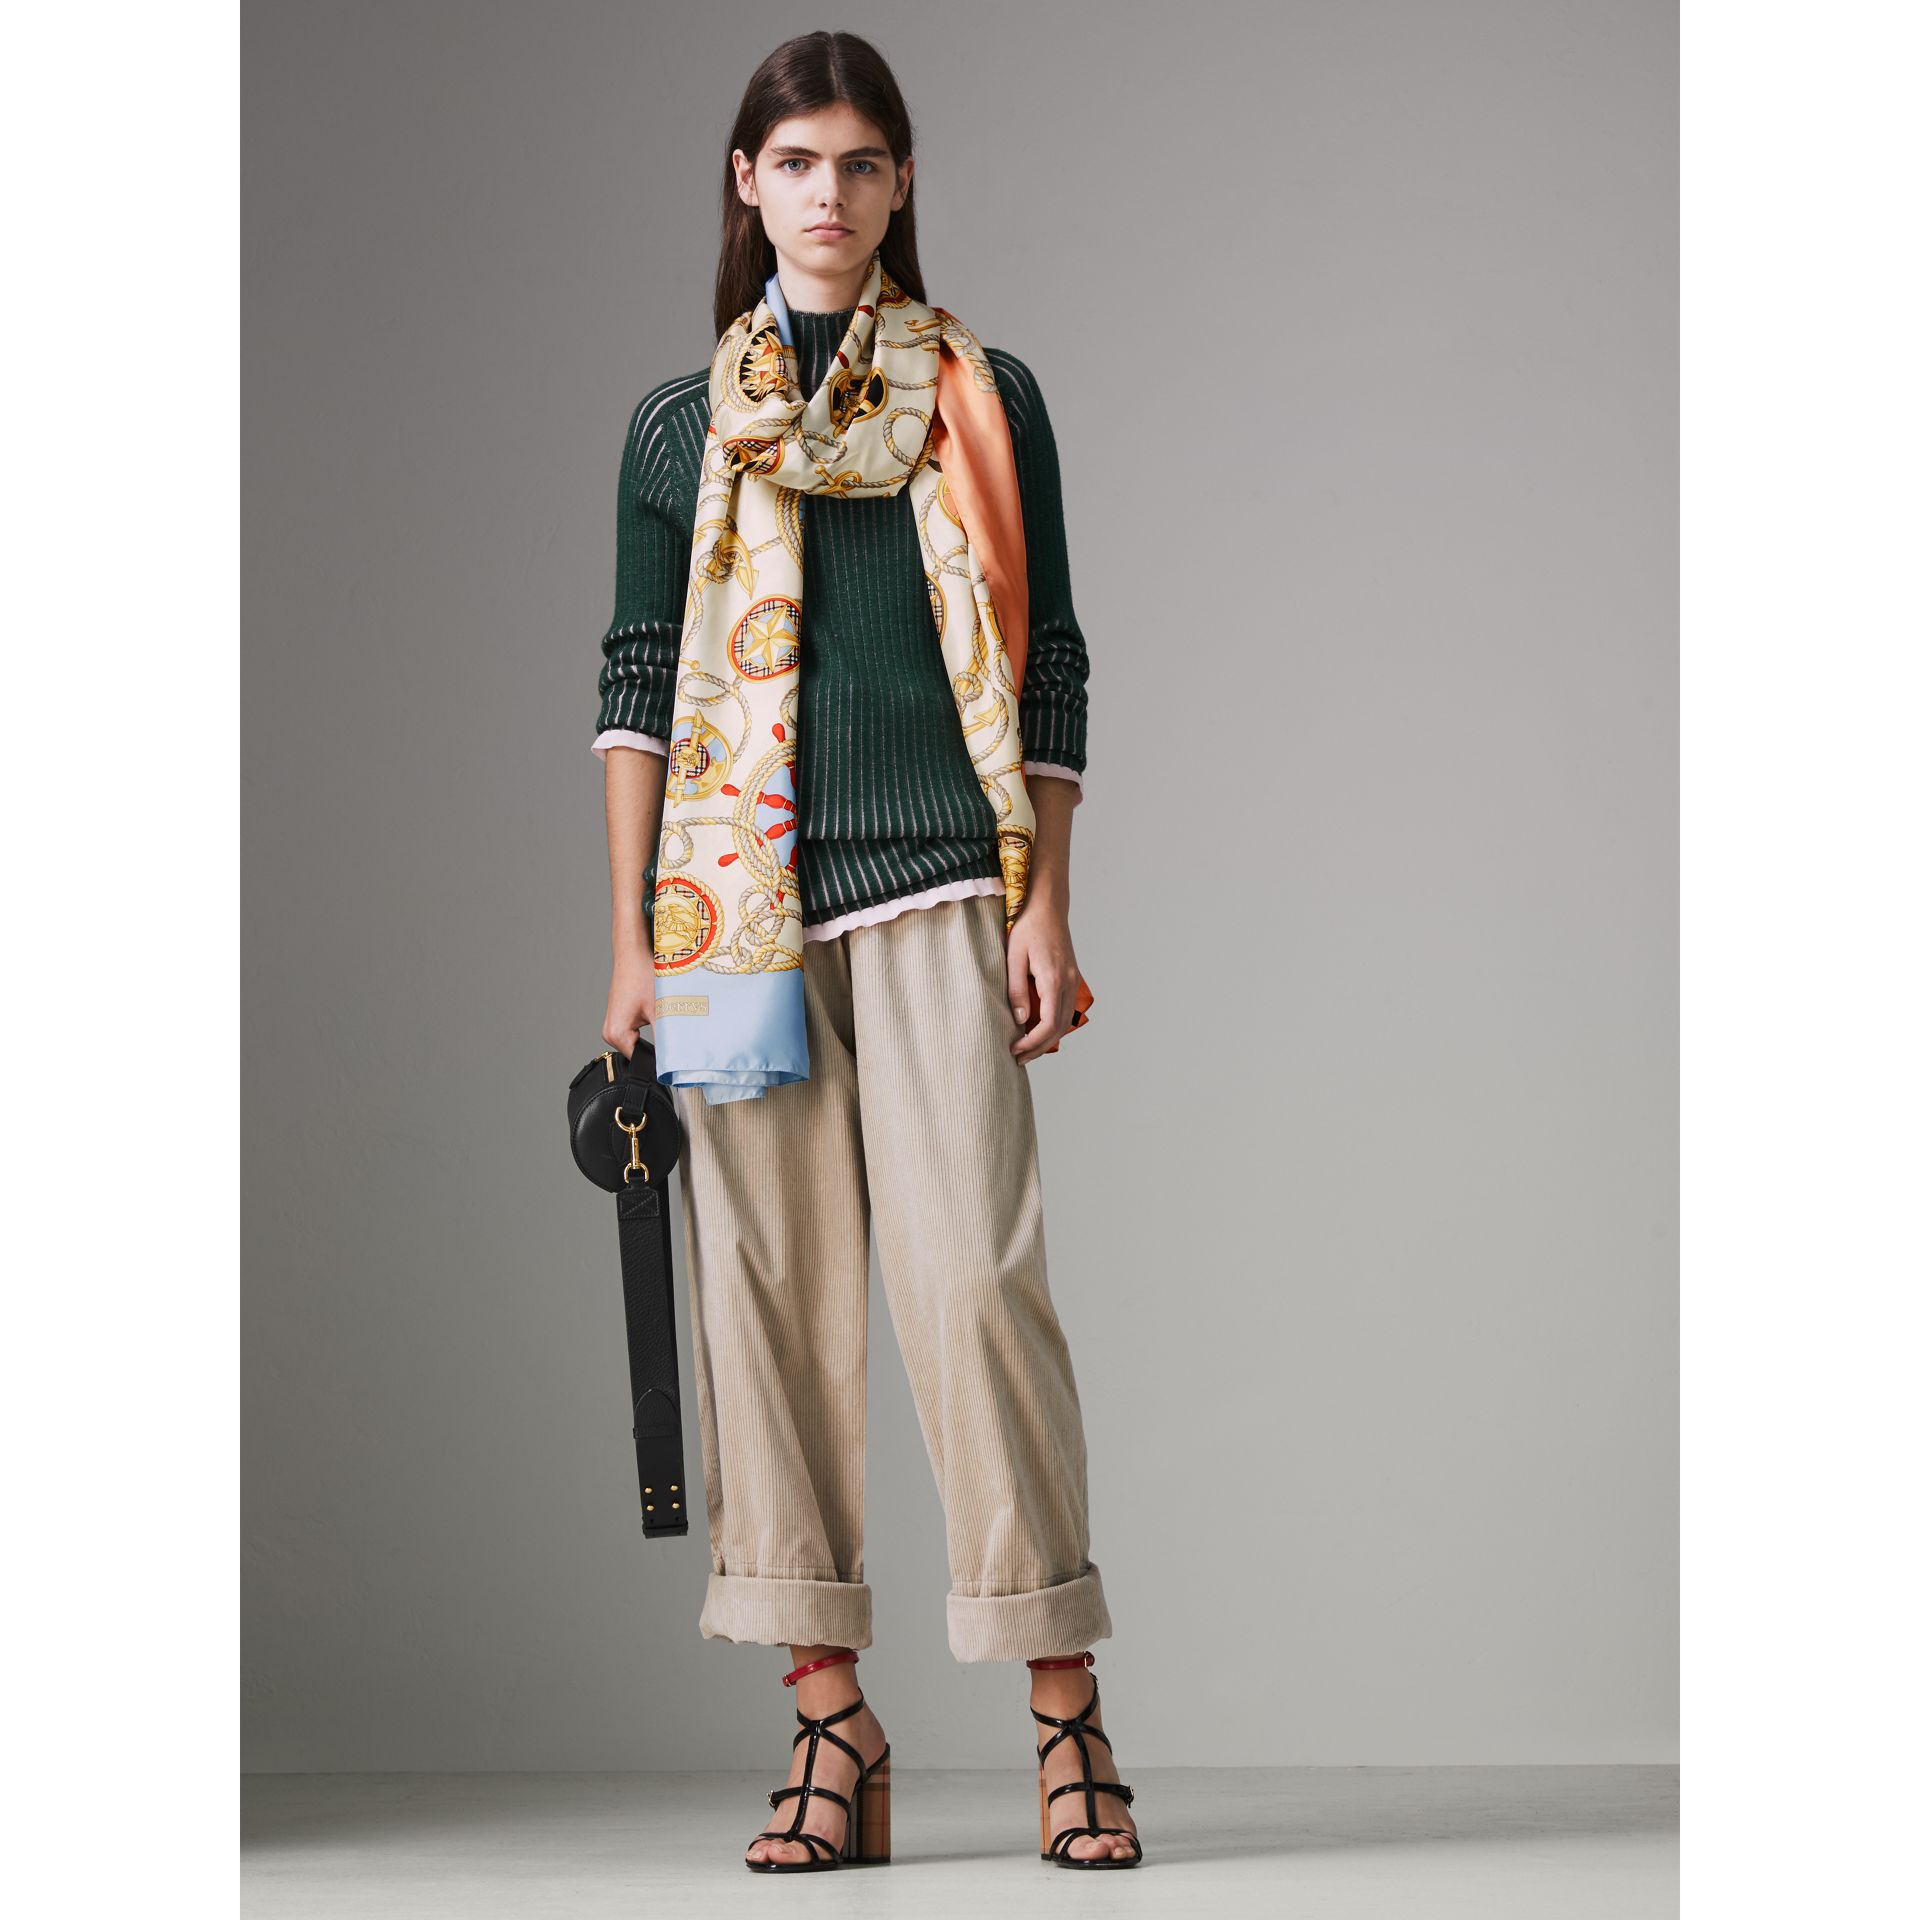 Archive Print Silk Scarf in Multicolour - Women | Burberry - gallery image 2